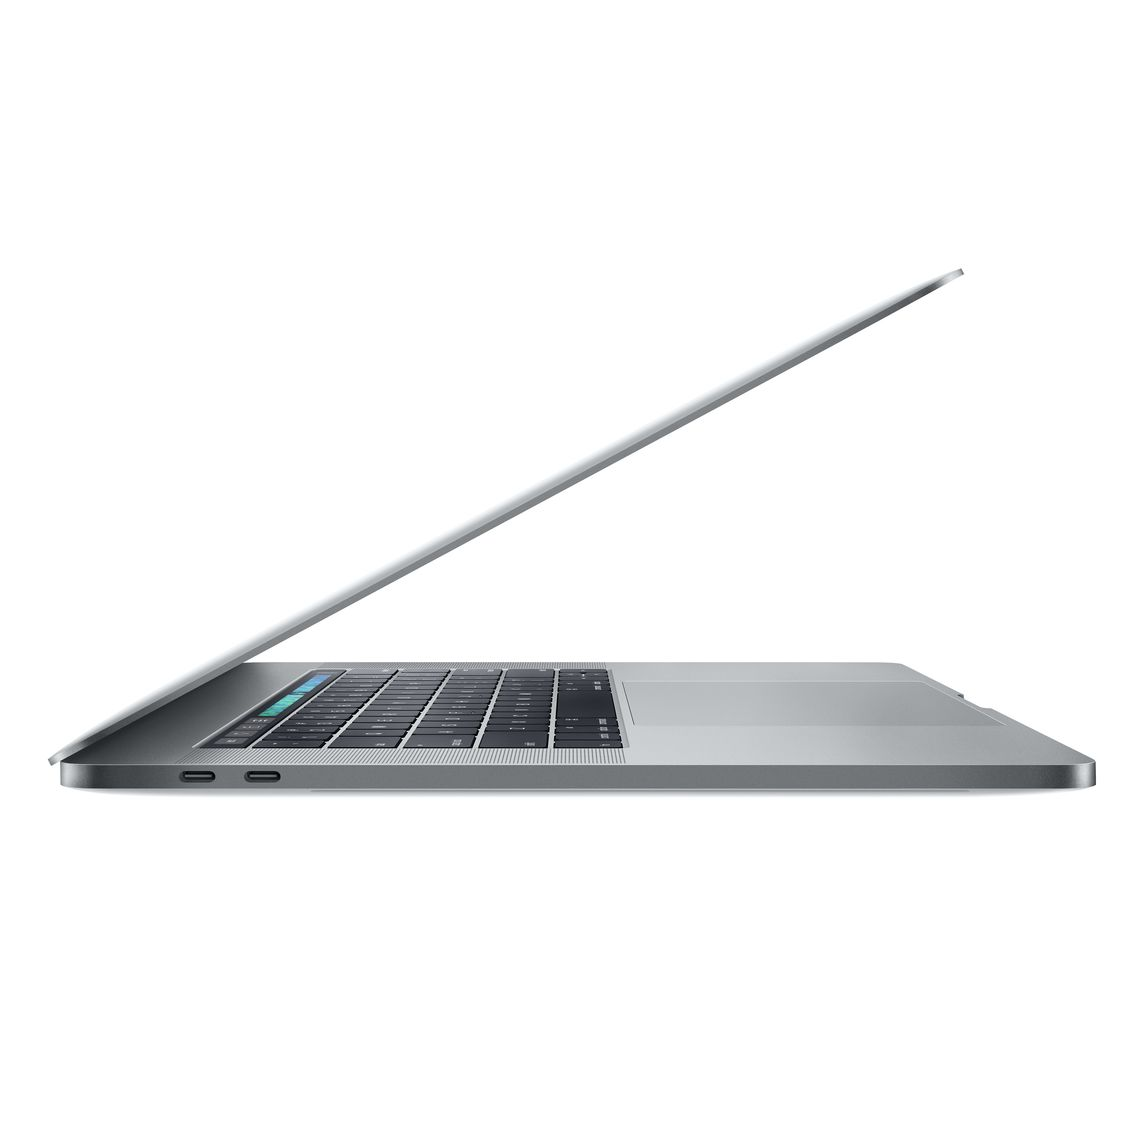 Refurbished 15 4-inch MacBook Pro 2 9GHz 6-core Intel Core i9 with Retina  display - Space Gray